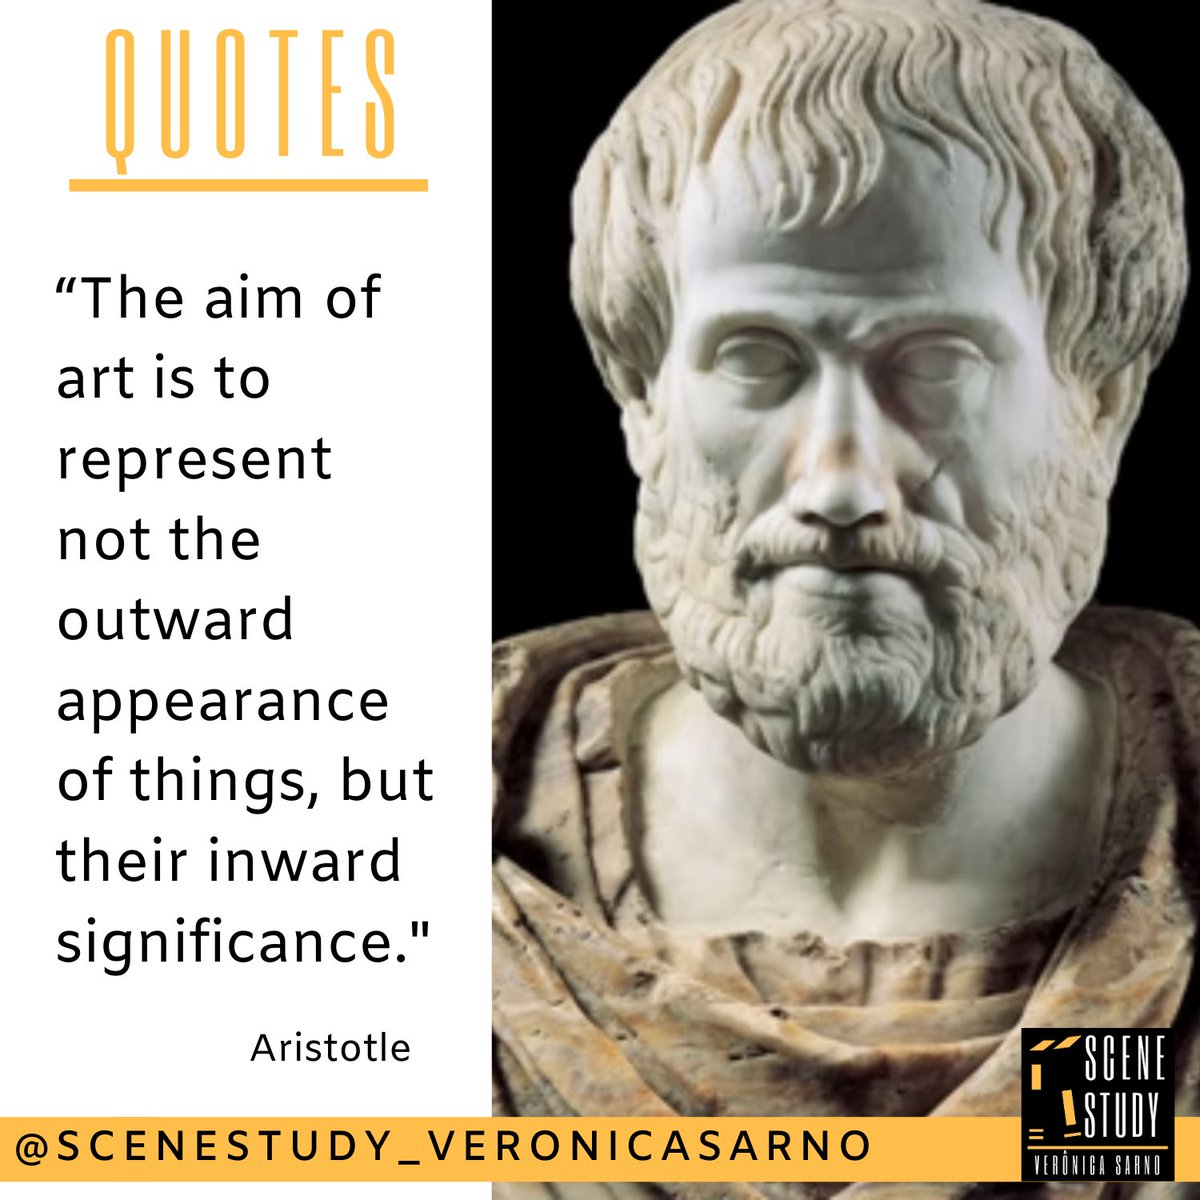 #quotes #quoteoftheday #aristotle #philosophy #questioning #philosophize #think #question #tothinkabout #artist #art